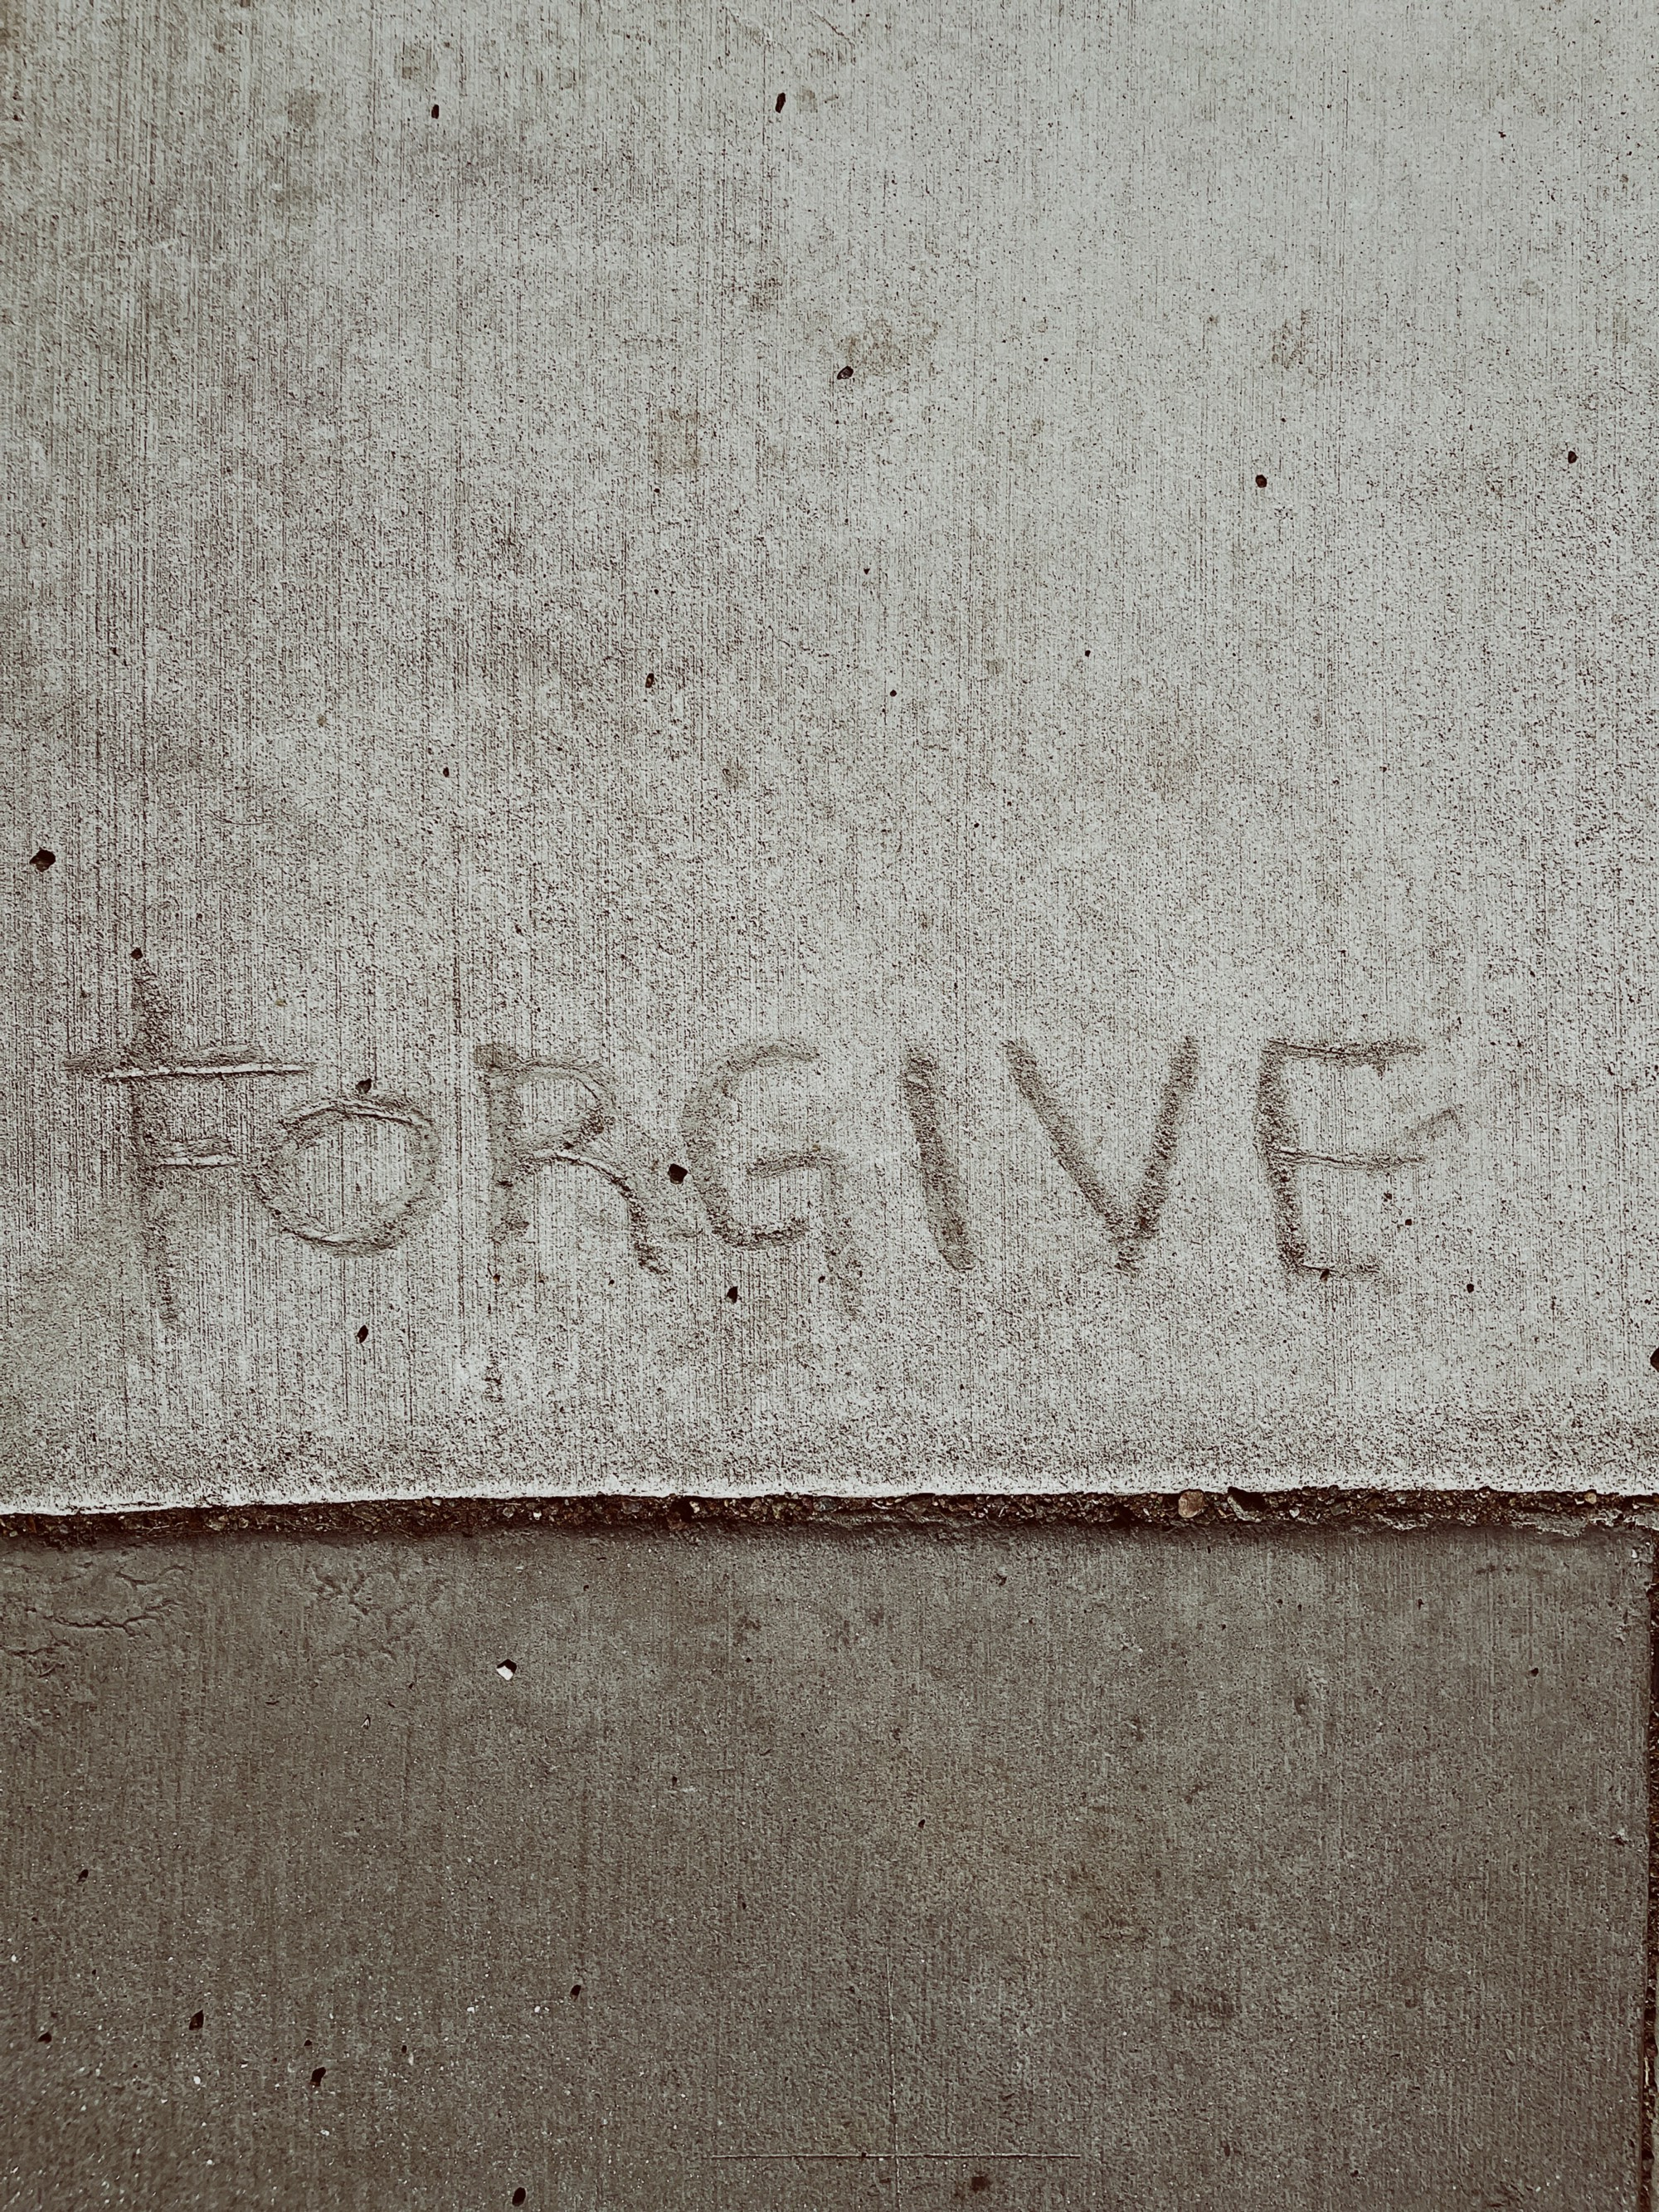 The word forgive written in a cement sidewalk